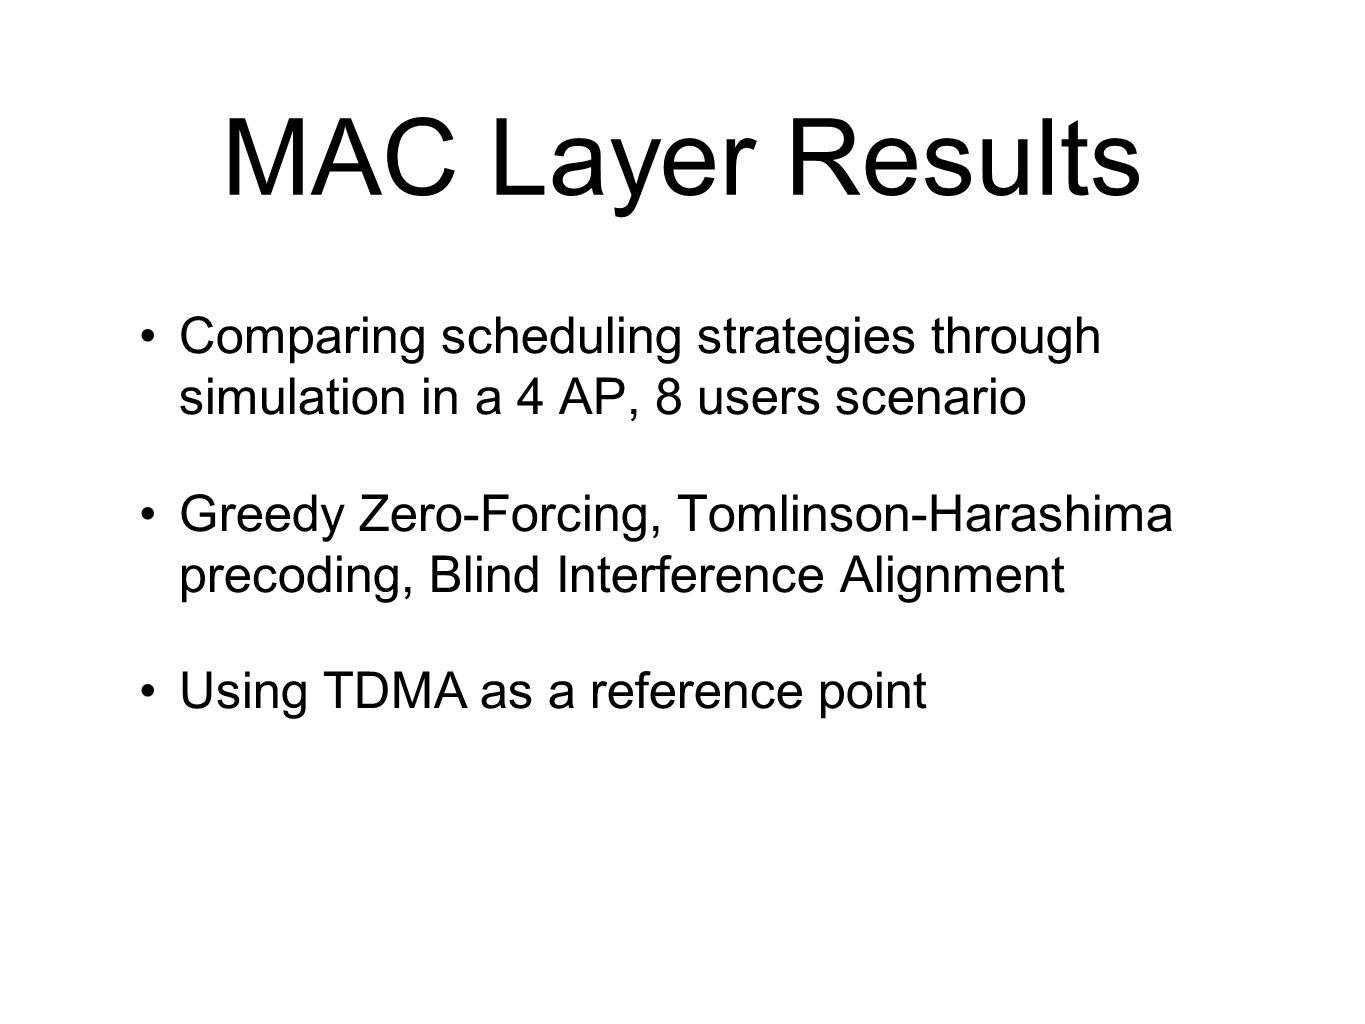 MAC Layer Results Comparing scheduling strategies through simulation in a 4 AP, 8 users scenario.